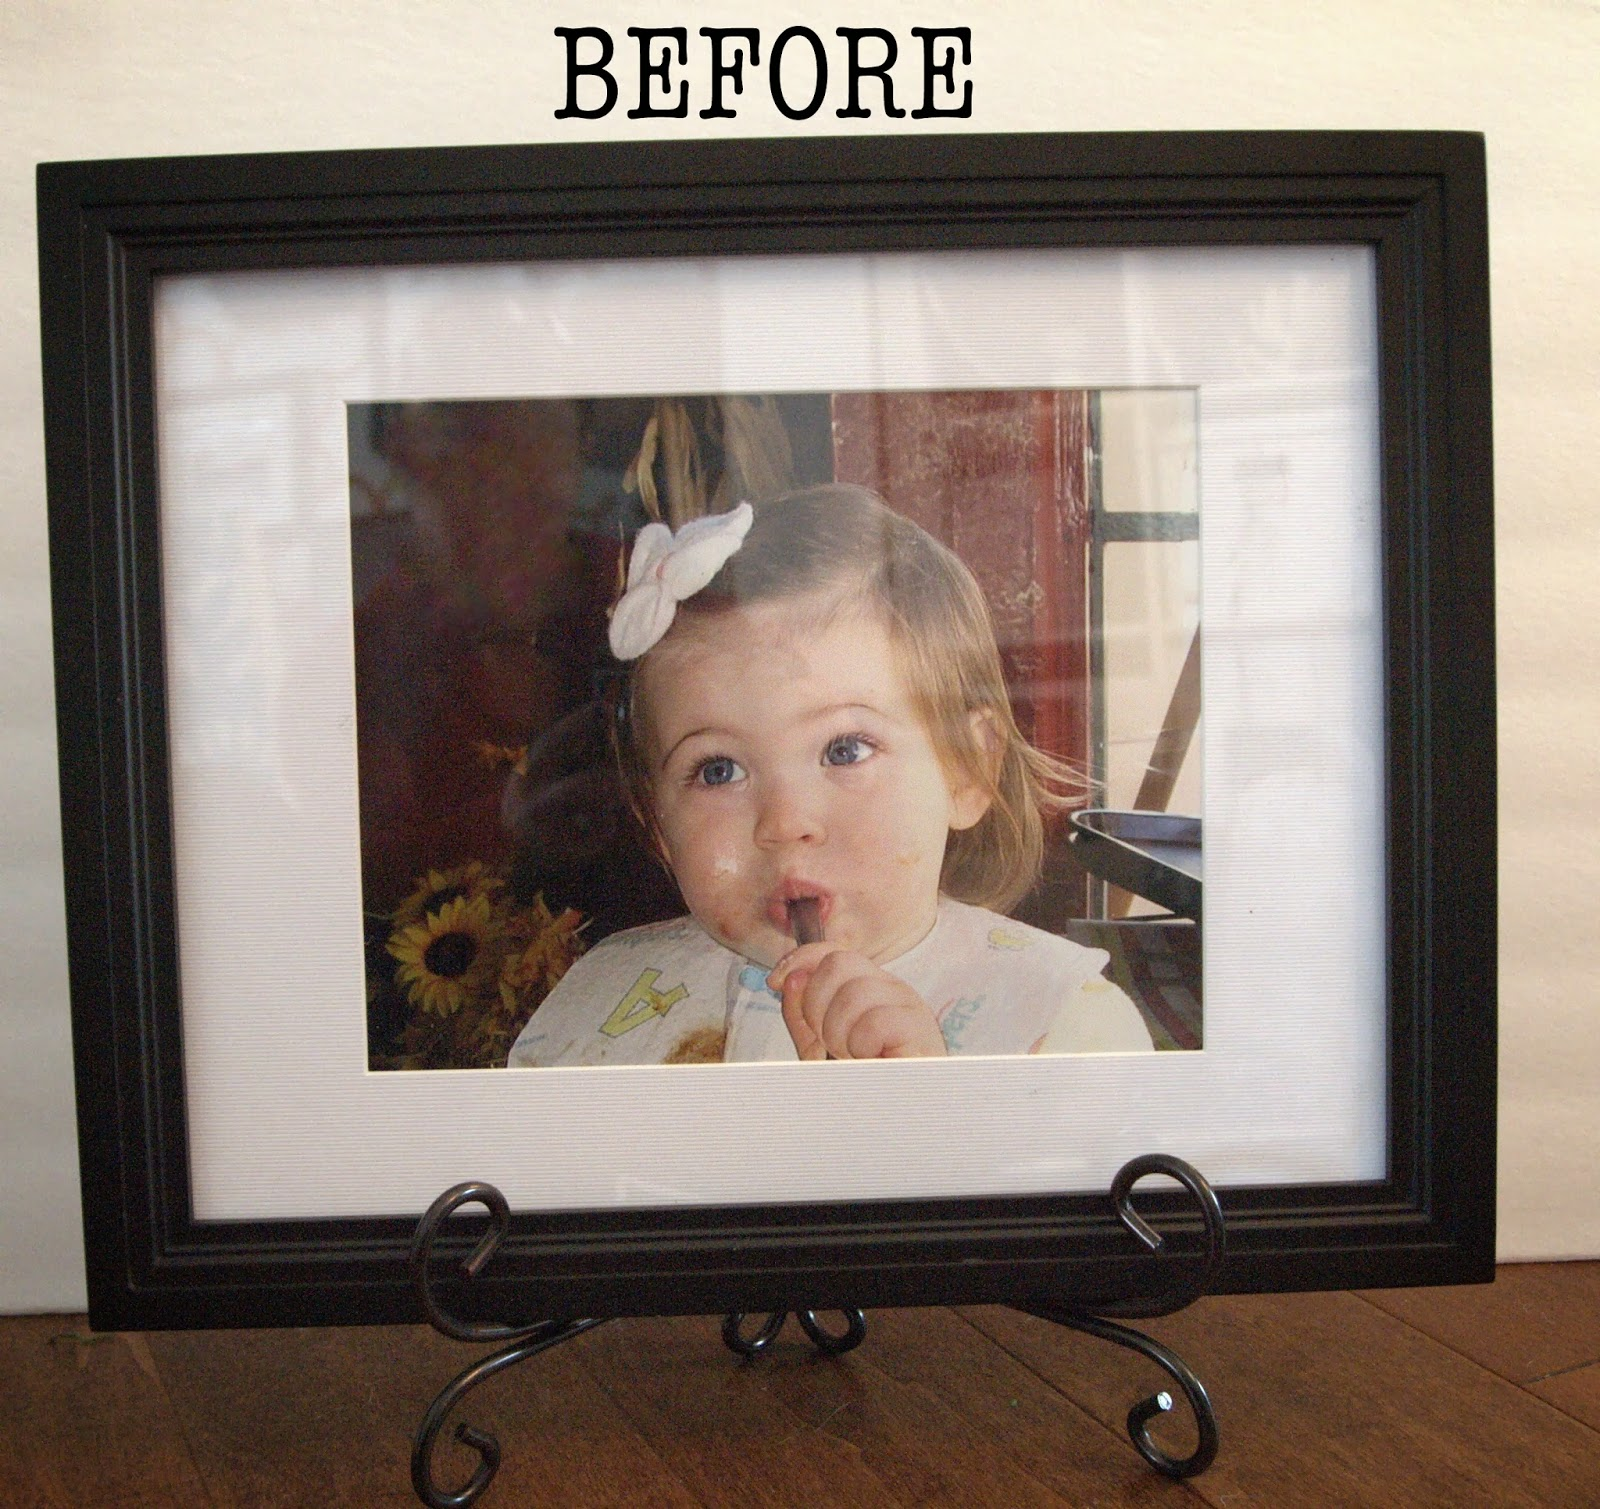 LoveYourRoom: Wrapping Paper Photo Frame Mat Project